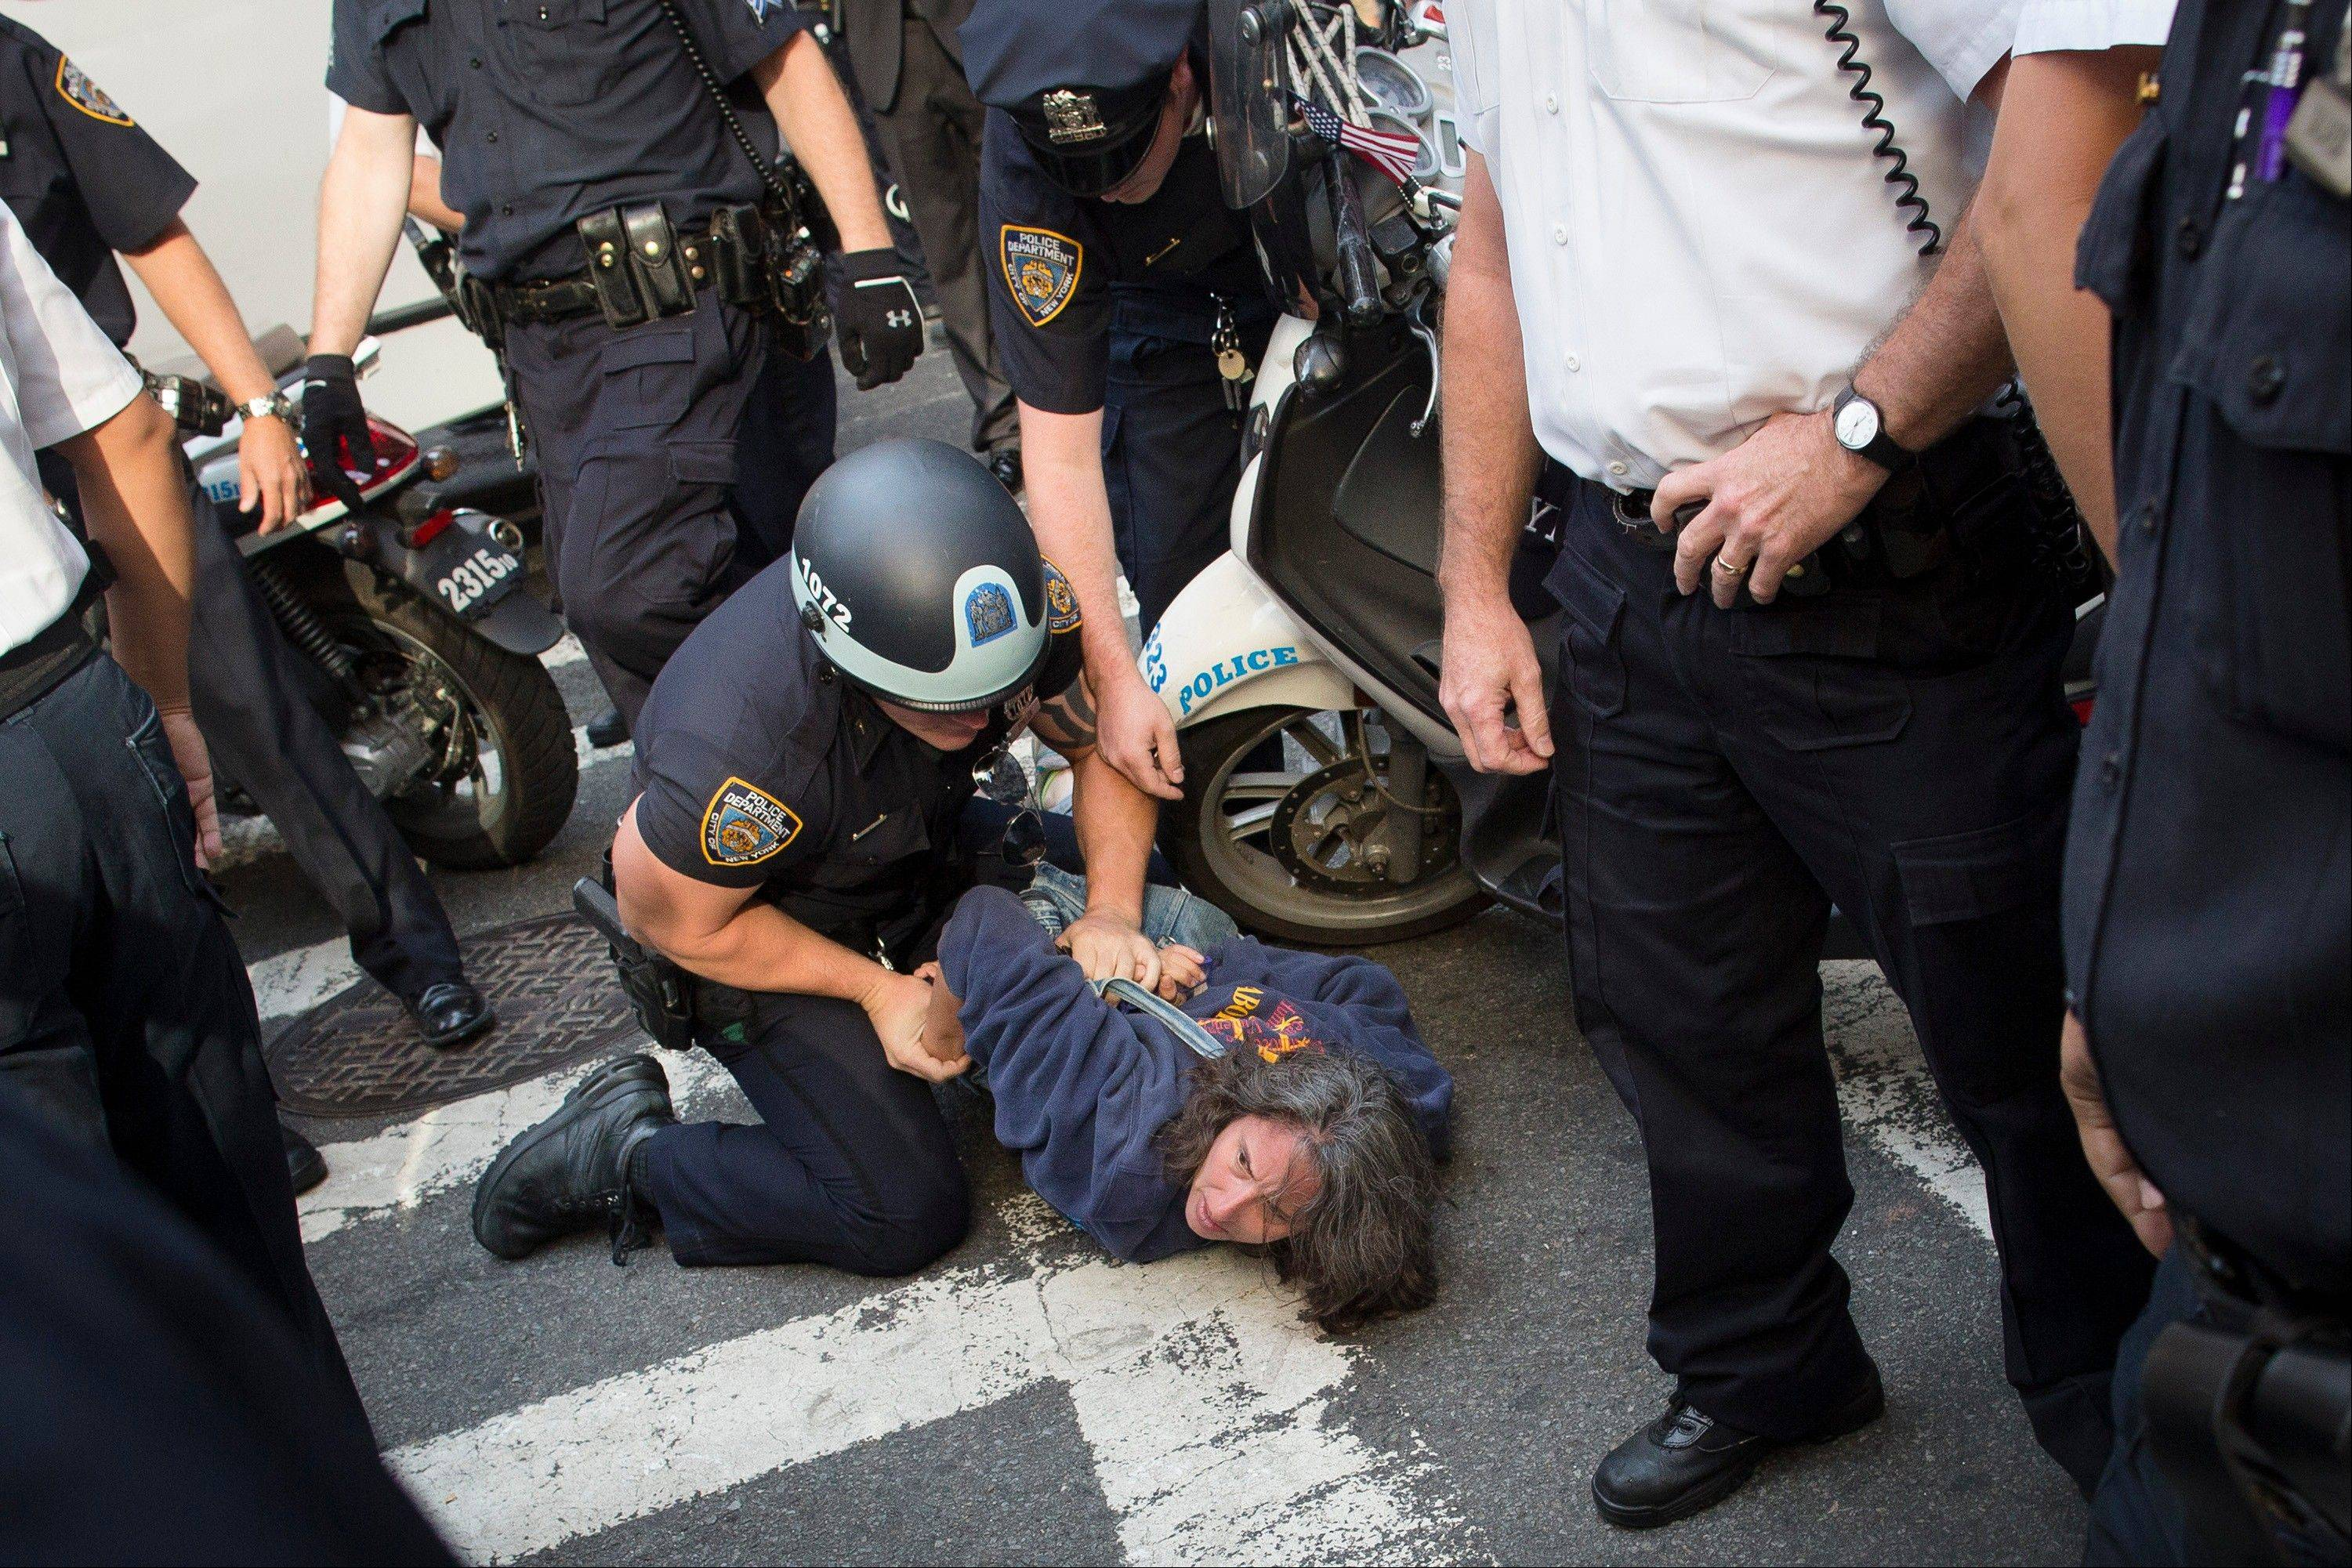 Anna Roblin is arrested during an Occupy Wall Street march in New York. A handful of Occupy Wall Street protestors were arrested during a march toward the New York Stock Exchange on the anniversary of the grass-roots movement.